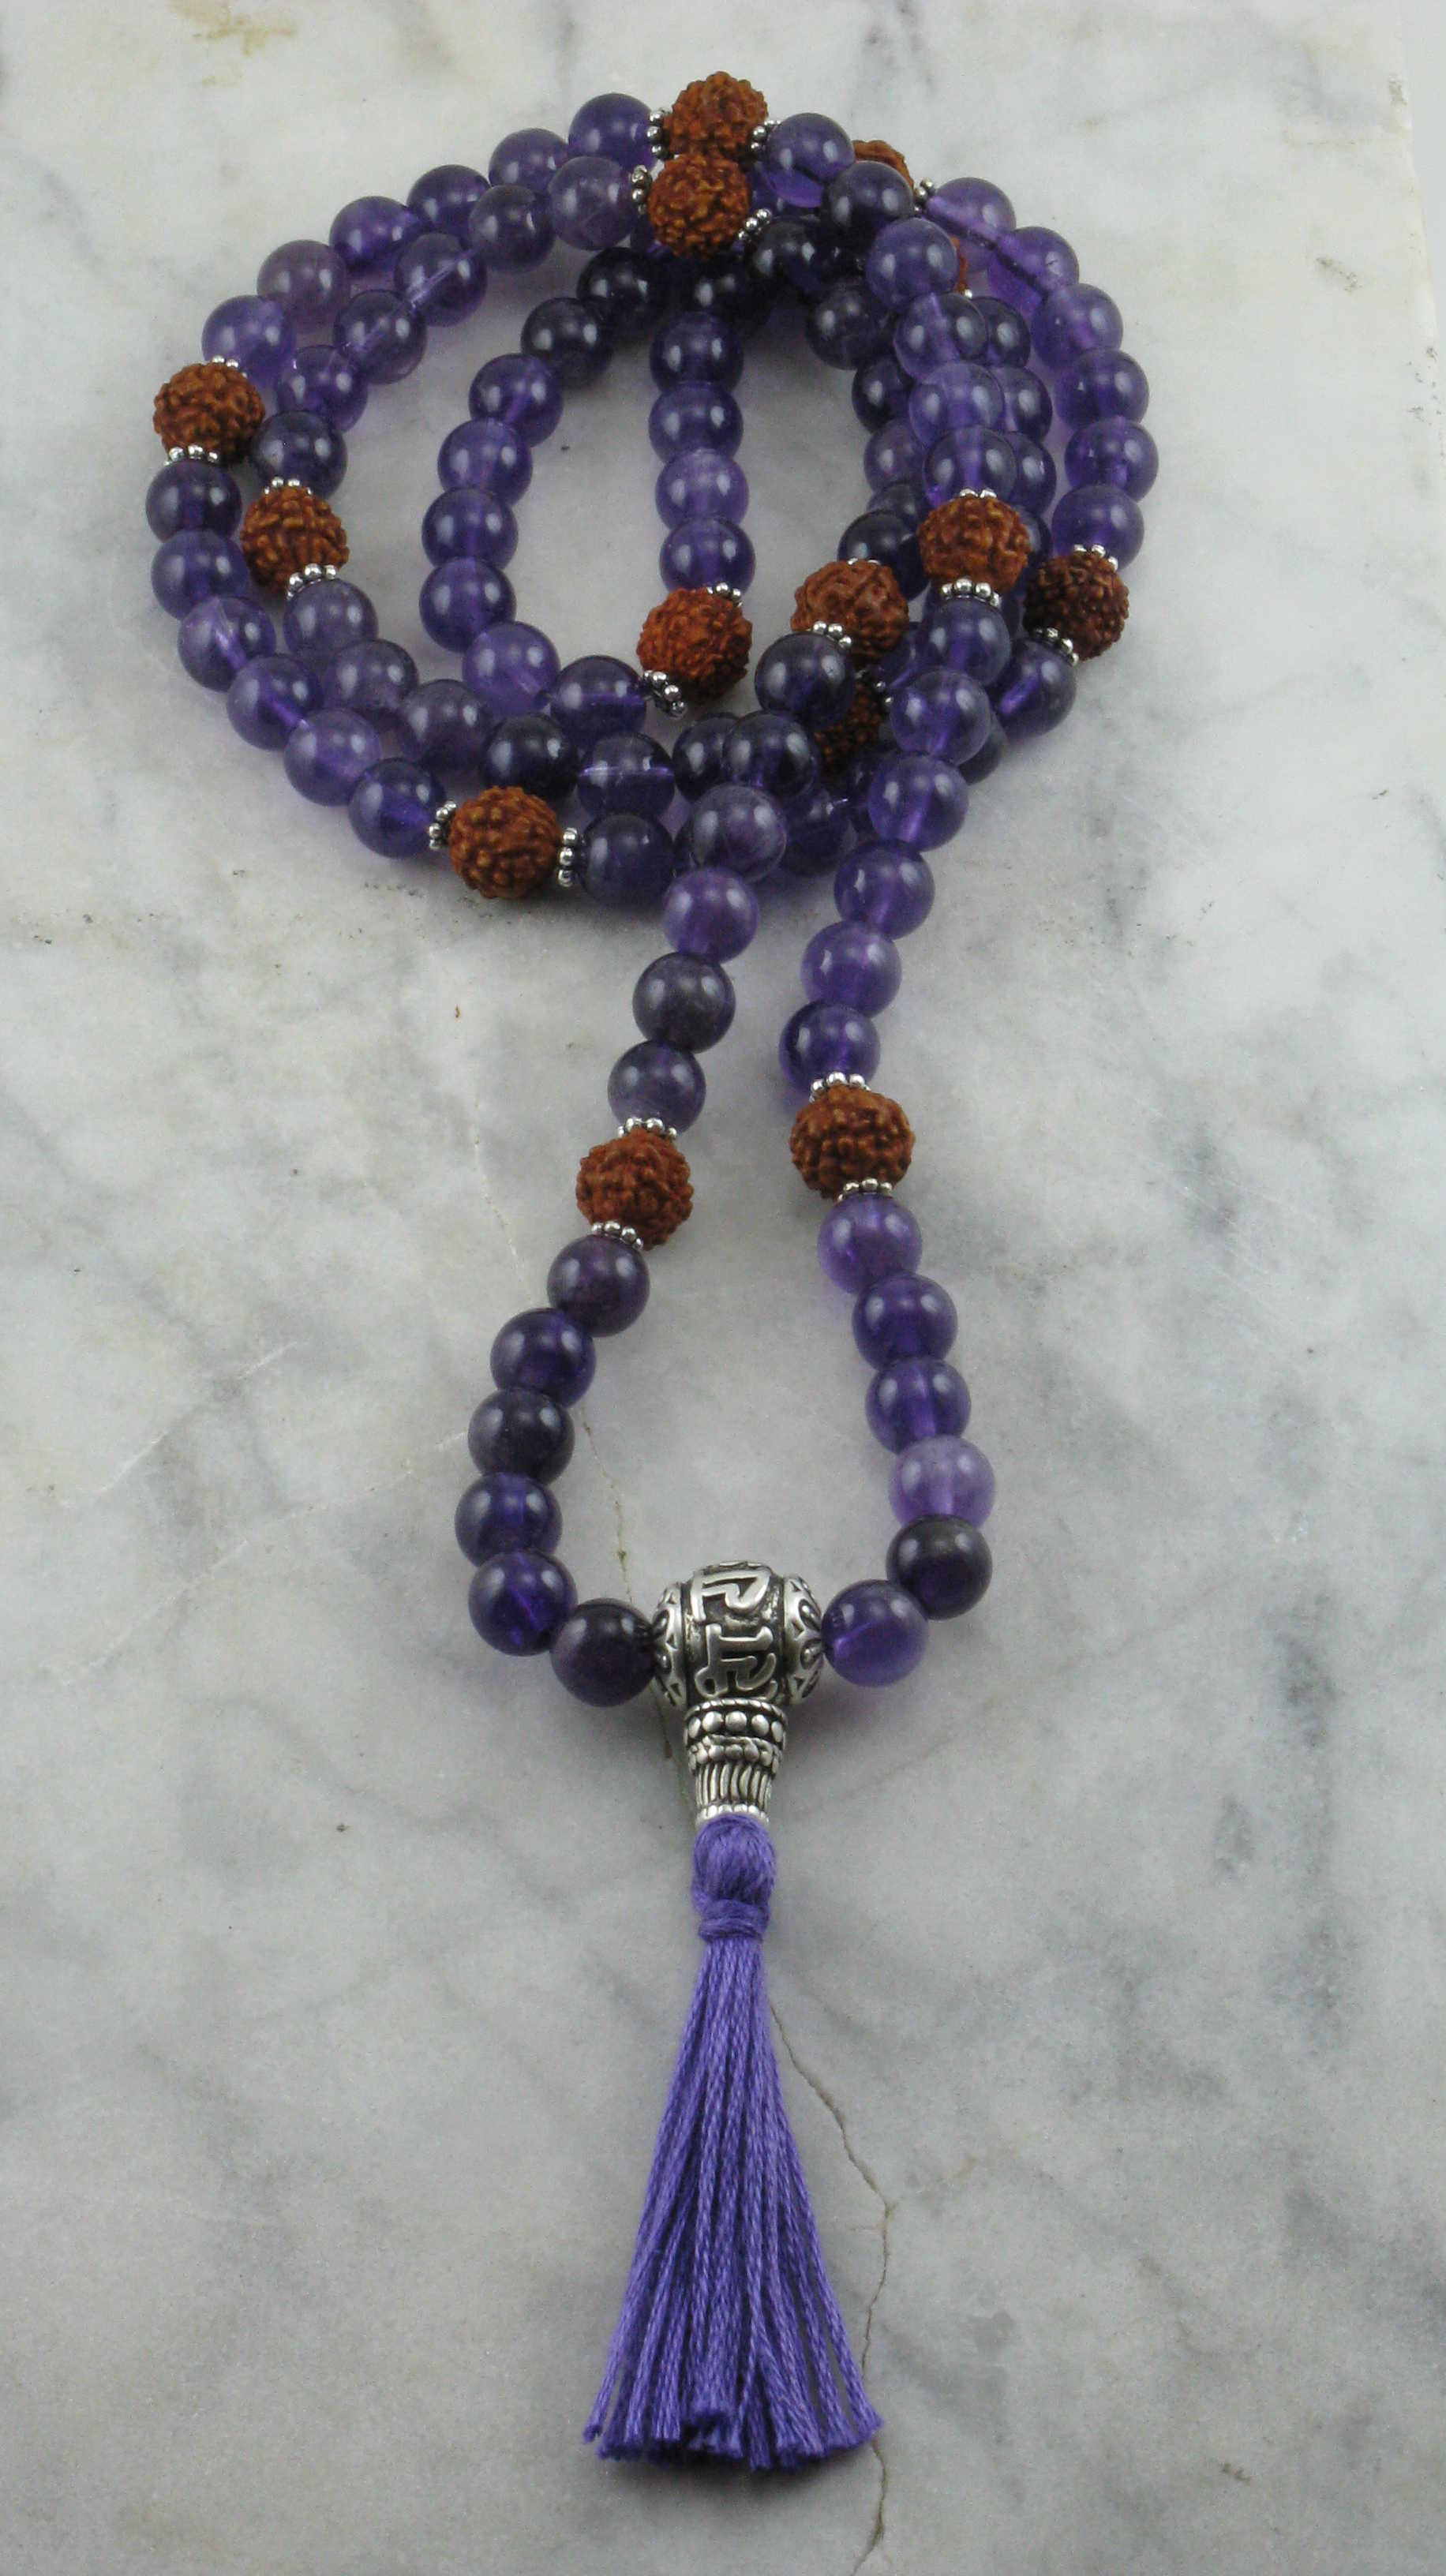 Devotion Mala Beads 108 Amethyst Mala Beads Hindu